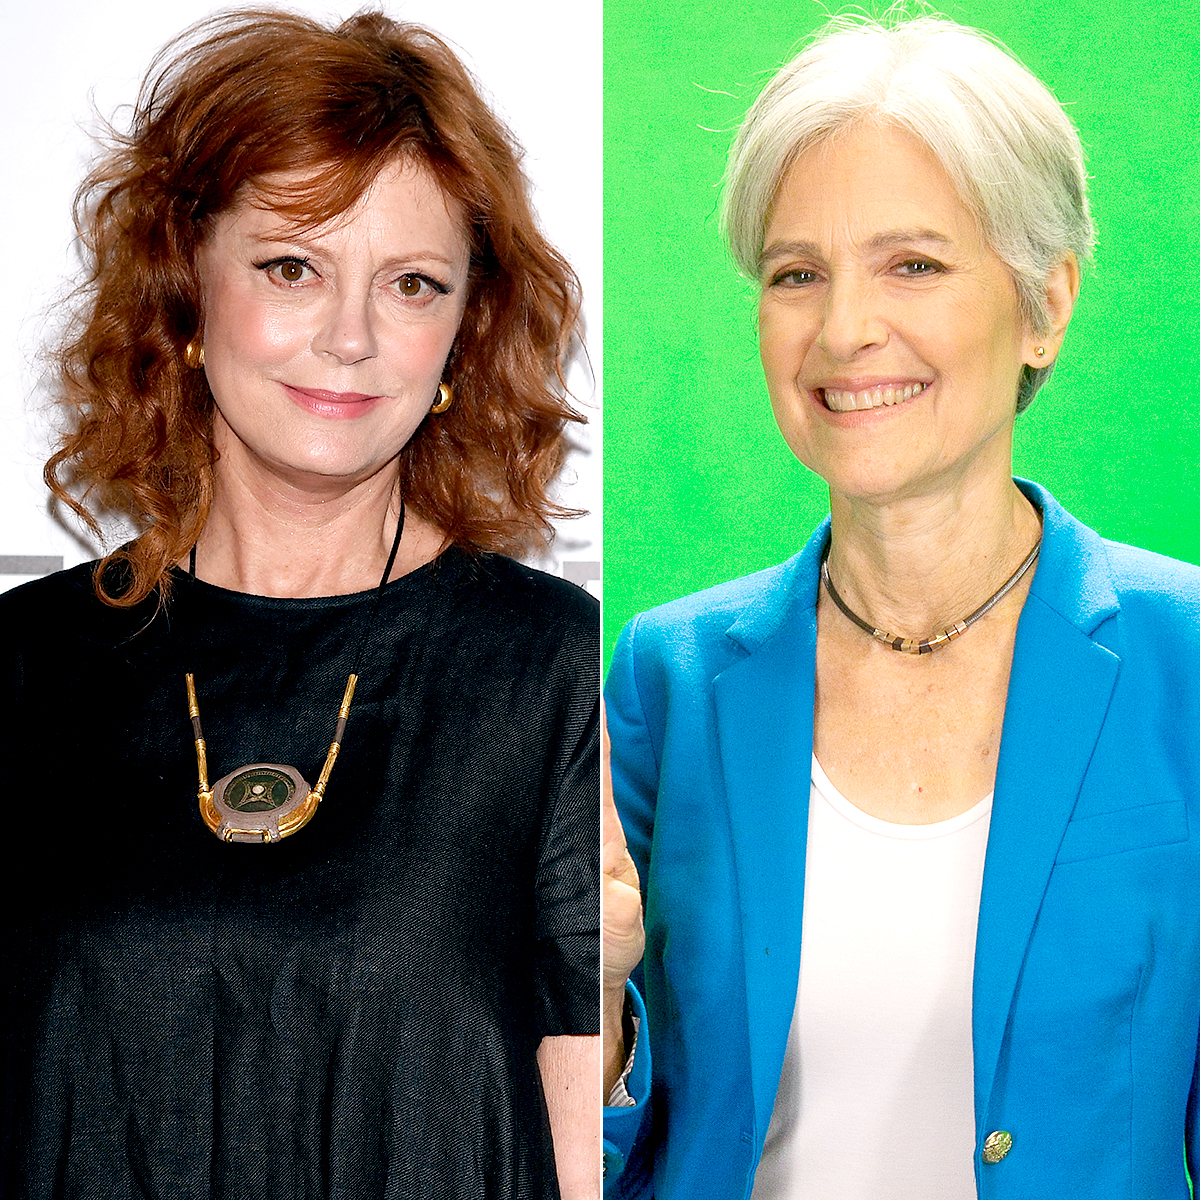 Susan Sarandon and Jill Stein